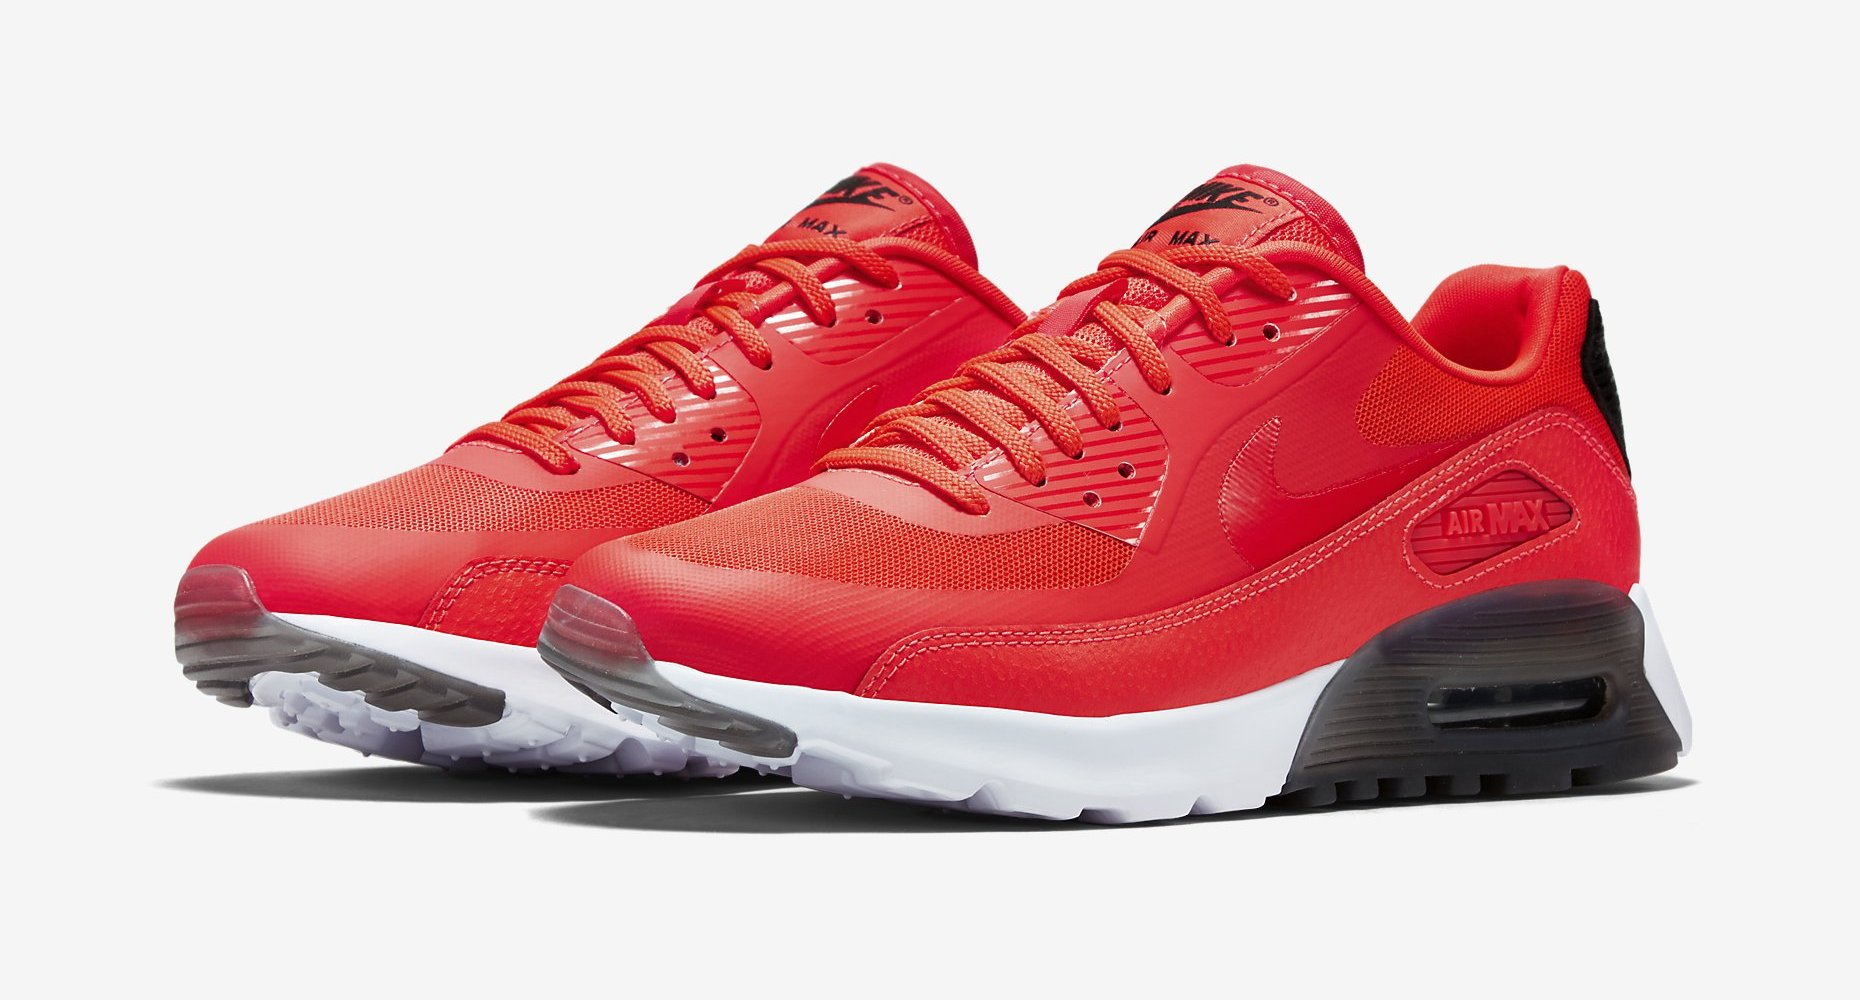 Nike Women's Air Max 90 Ultra Essential Infrared Black